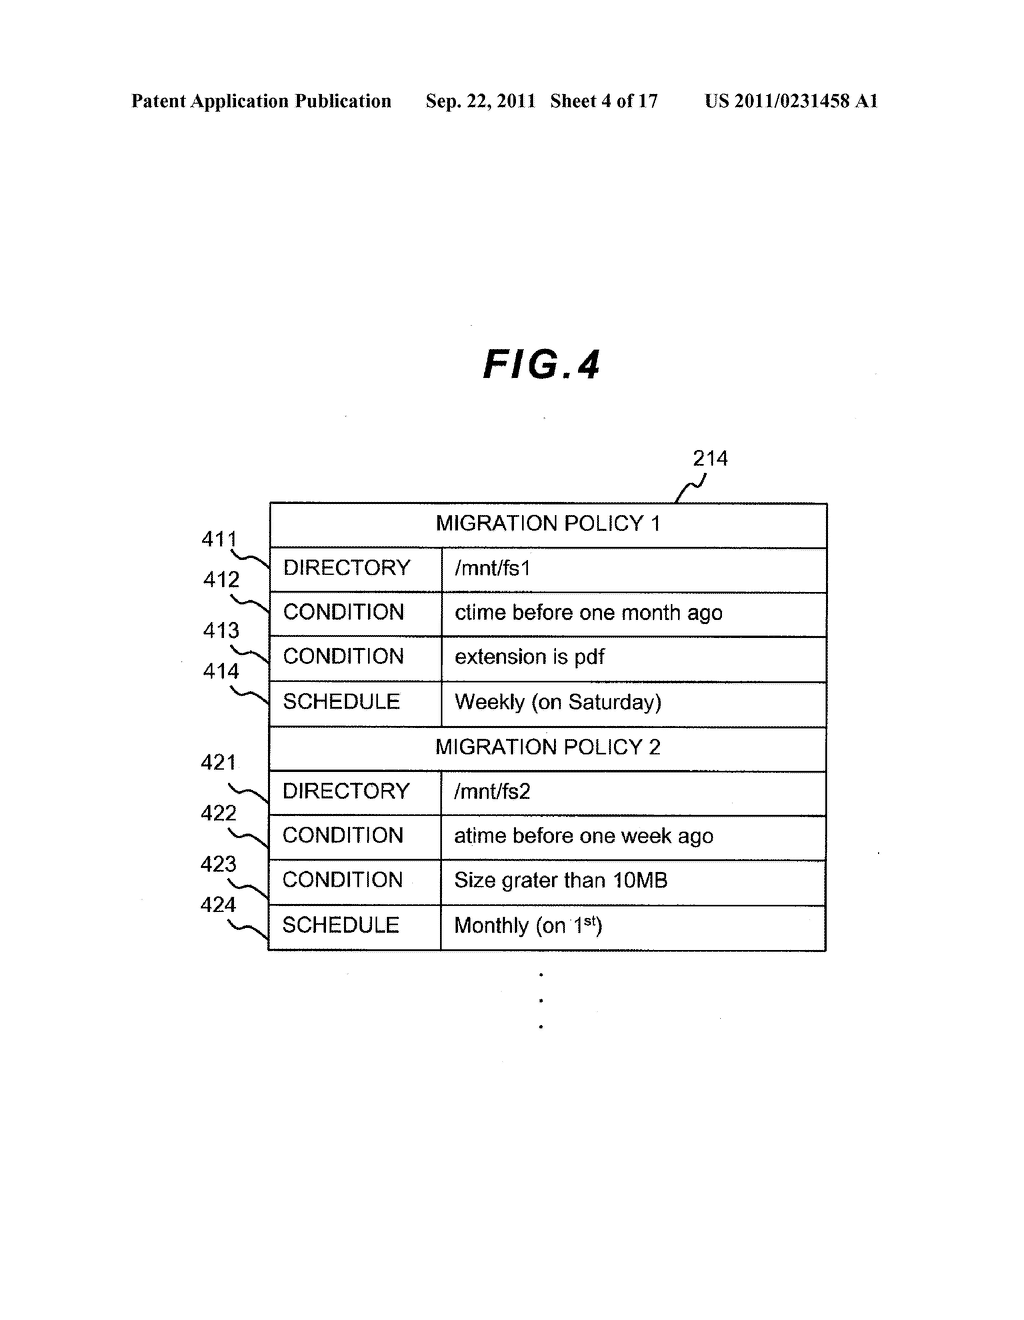 FILE LEVEL HIERARCHICAL STORAGE MANAGEMENT SYSTEM, METHOD, AND APPARATUS - diagram, schematic, and image 05